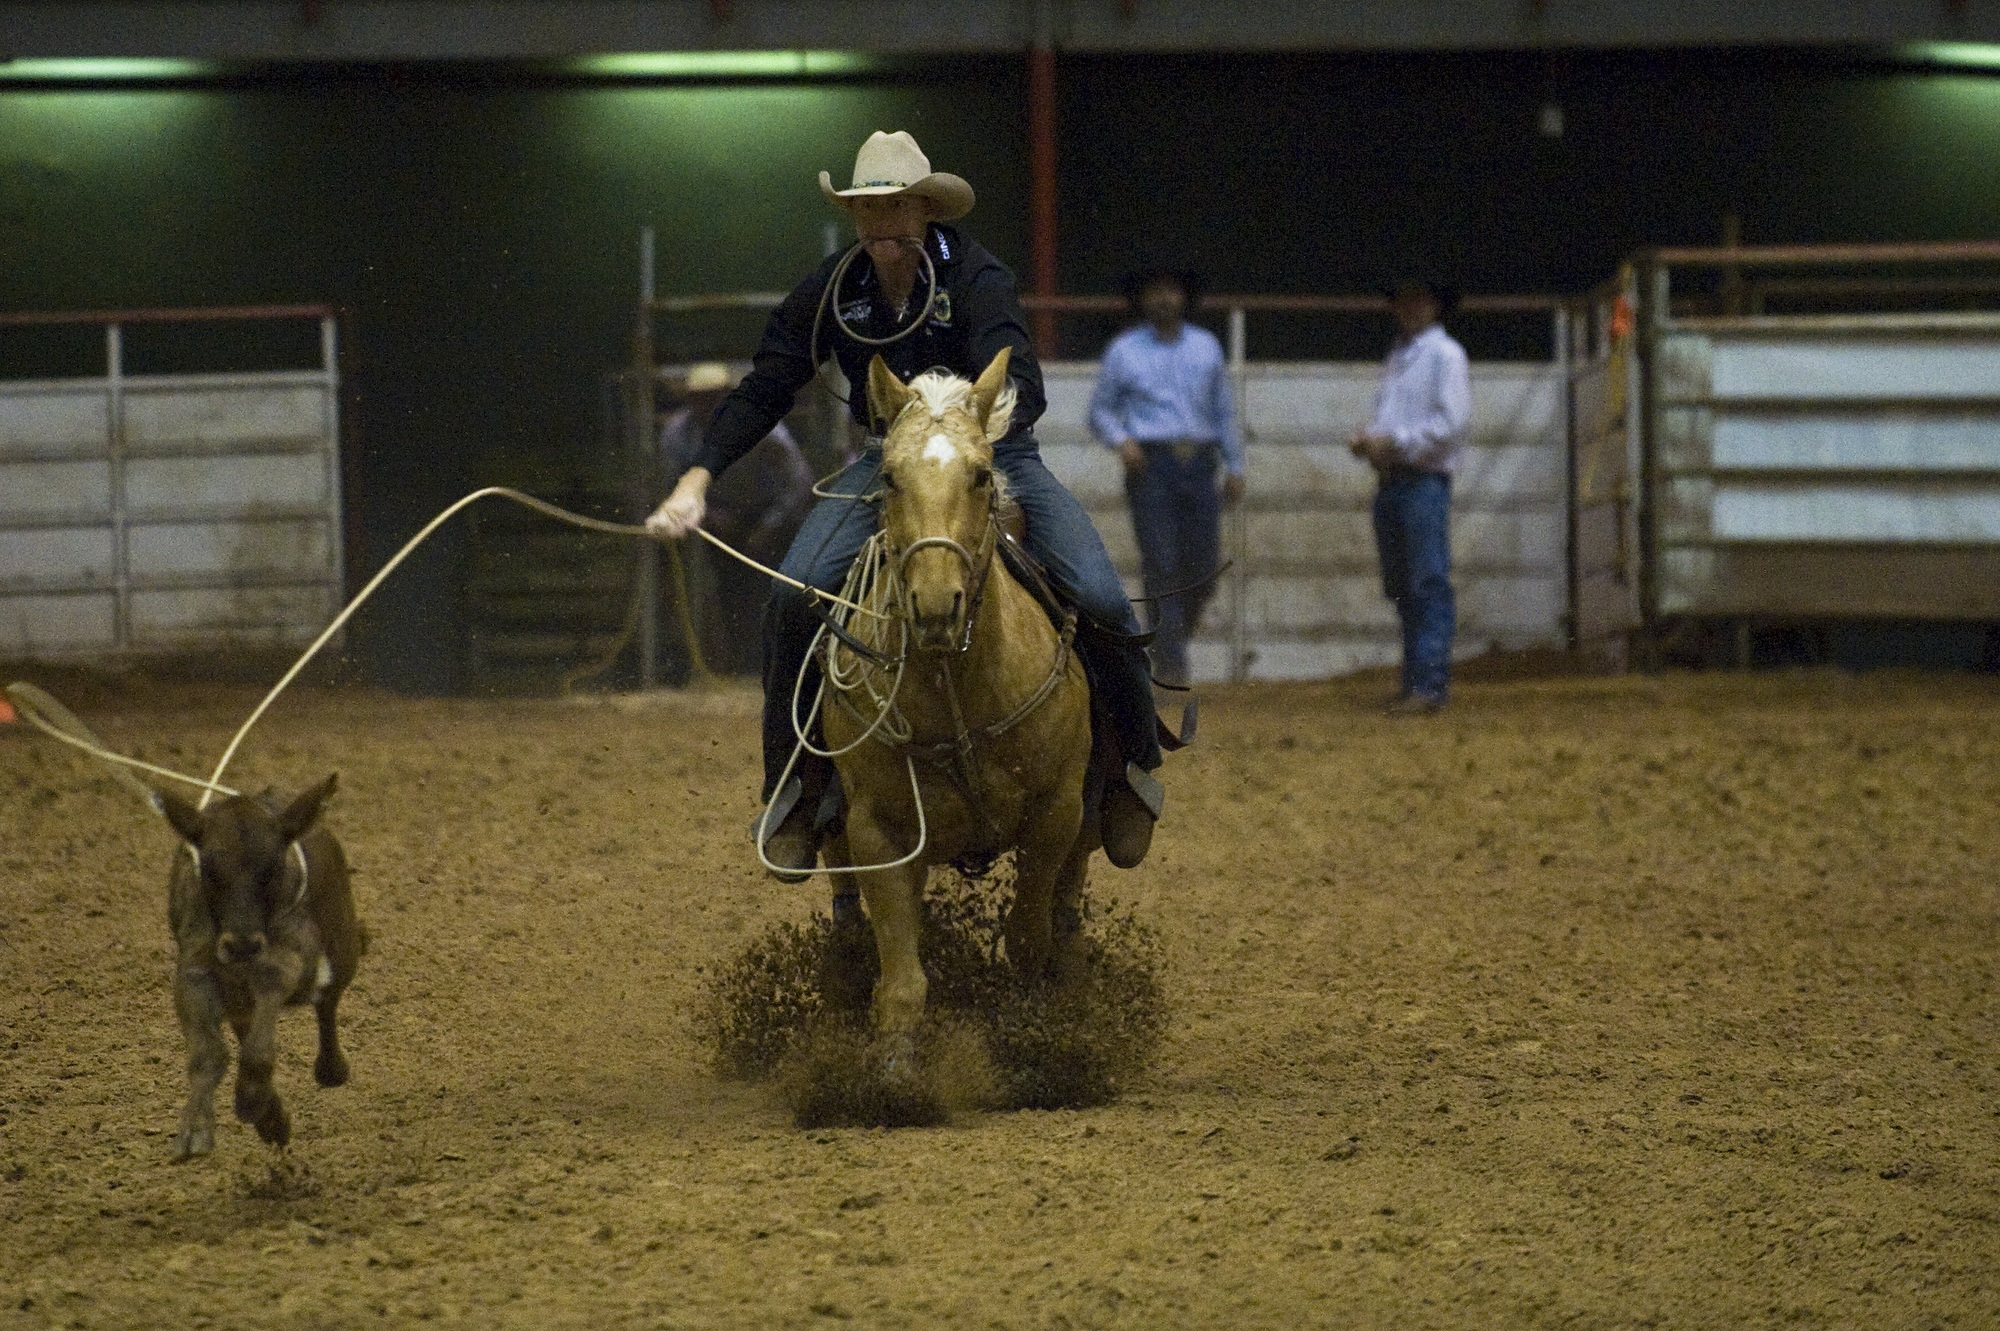 Rider in the ring photo